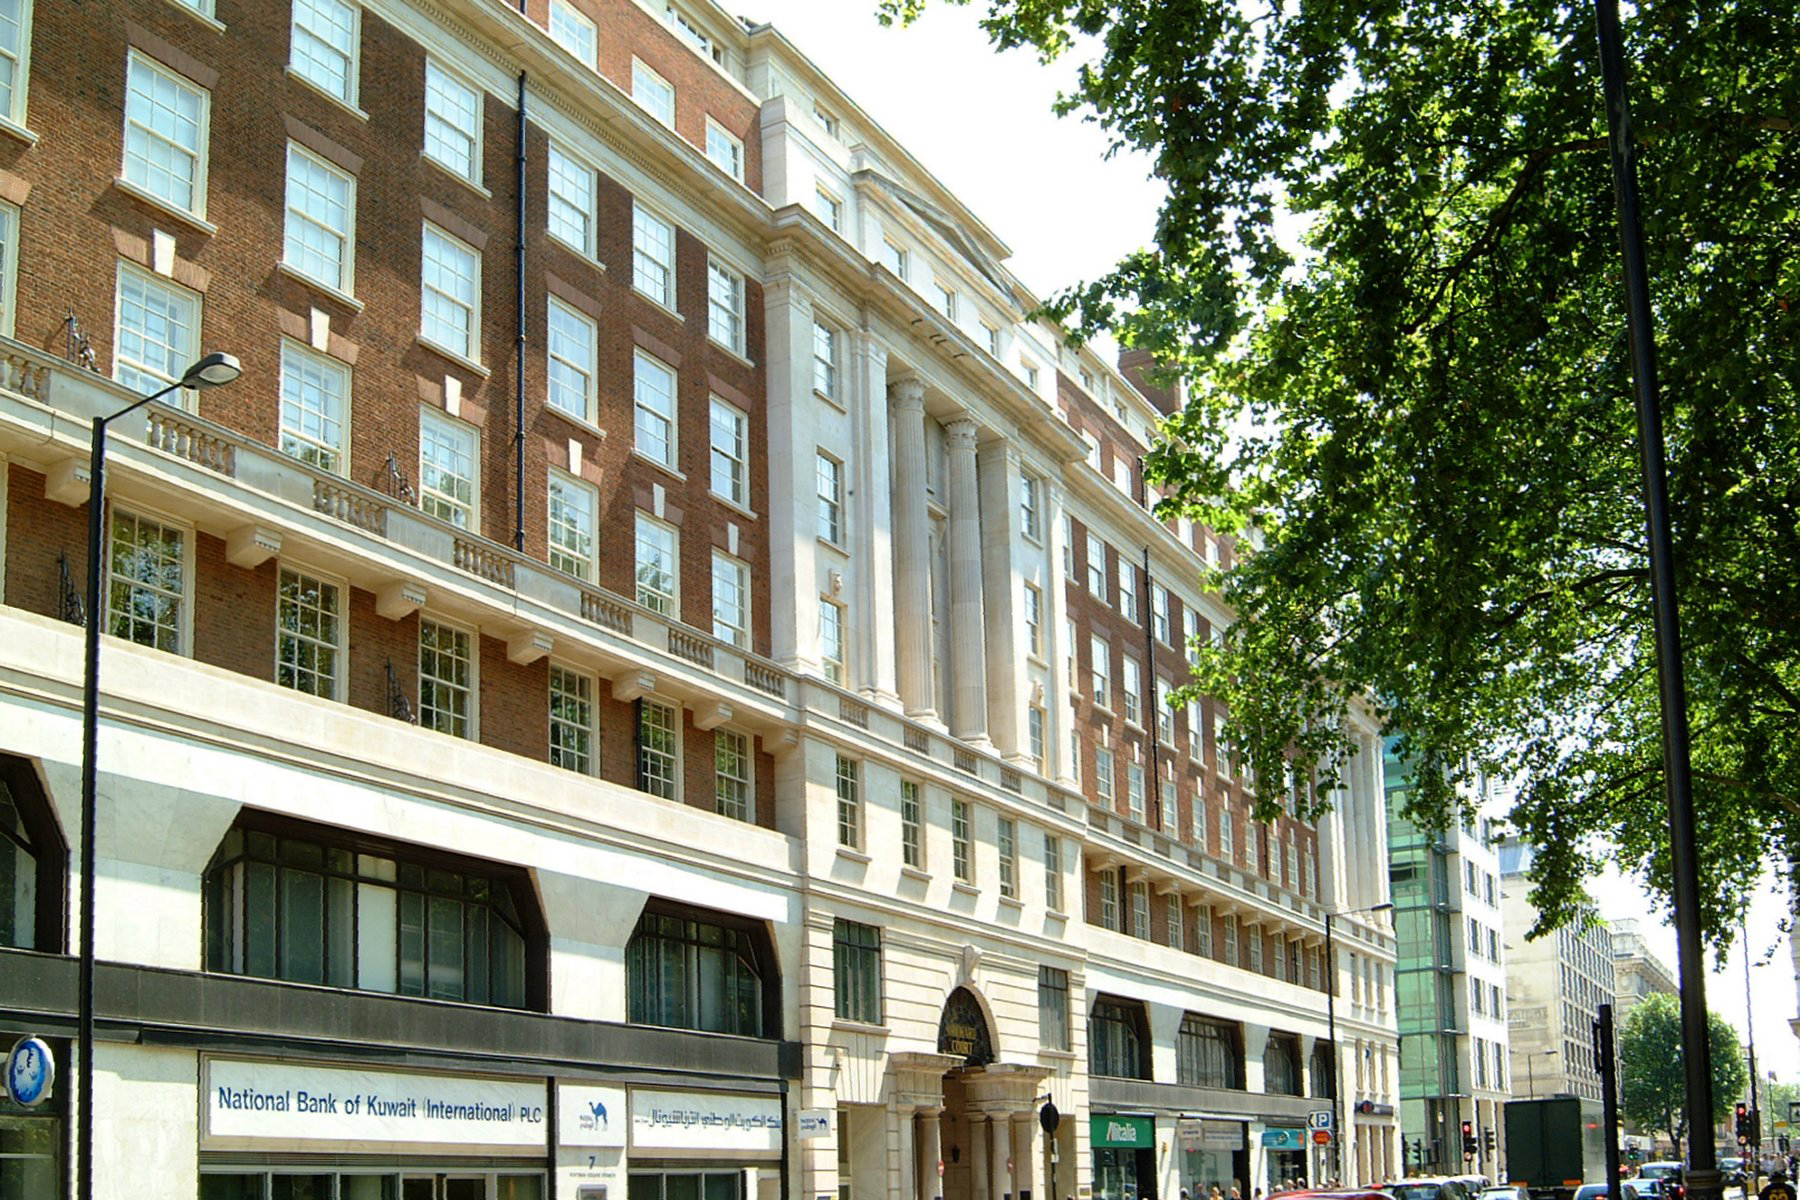 Orchard Court - Portman Square